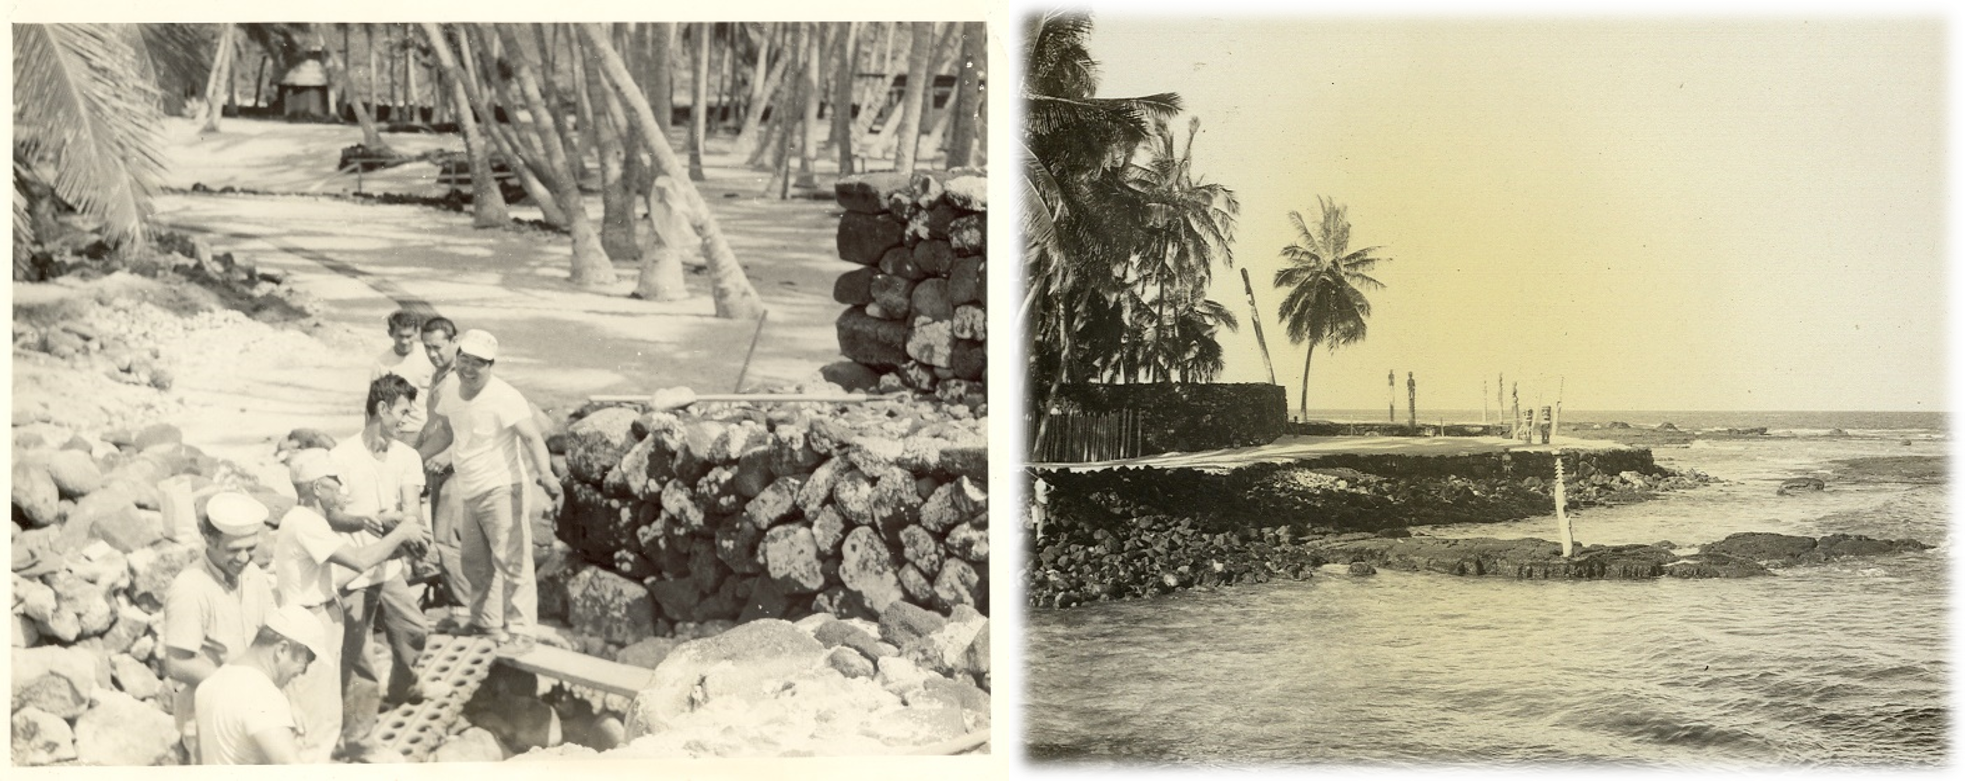 Two Photos: 1) Workers perform an archaeological excavation of the Hale o Keawe platform 2) Historic photo of the restored Hale o Keawe platform